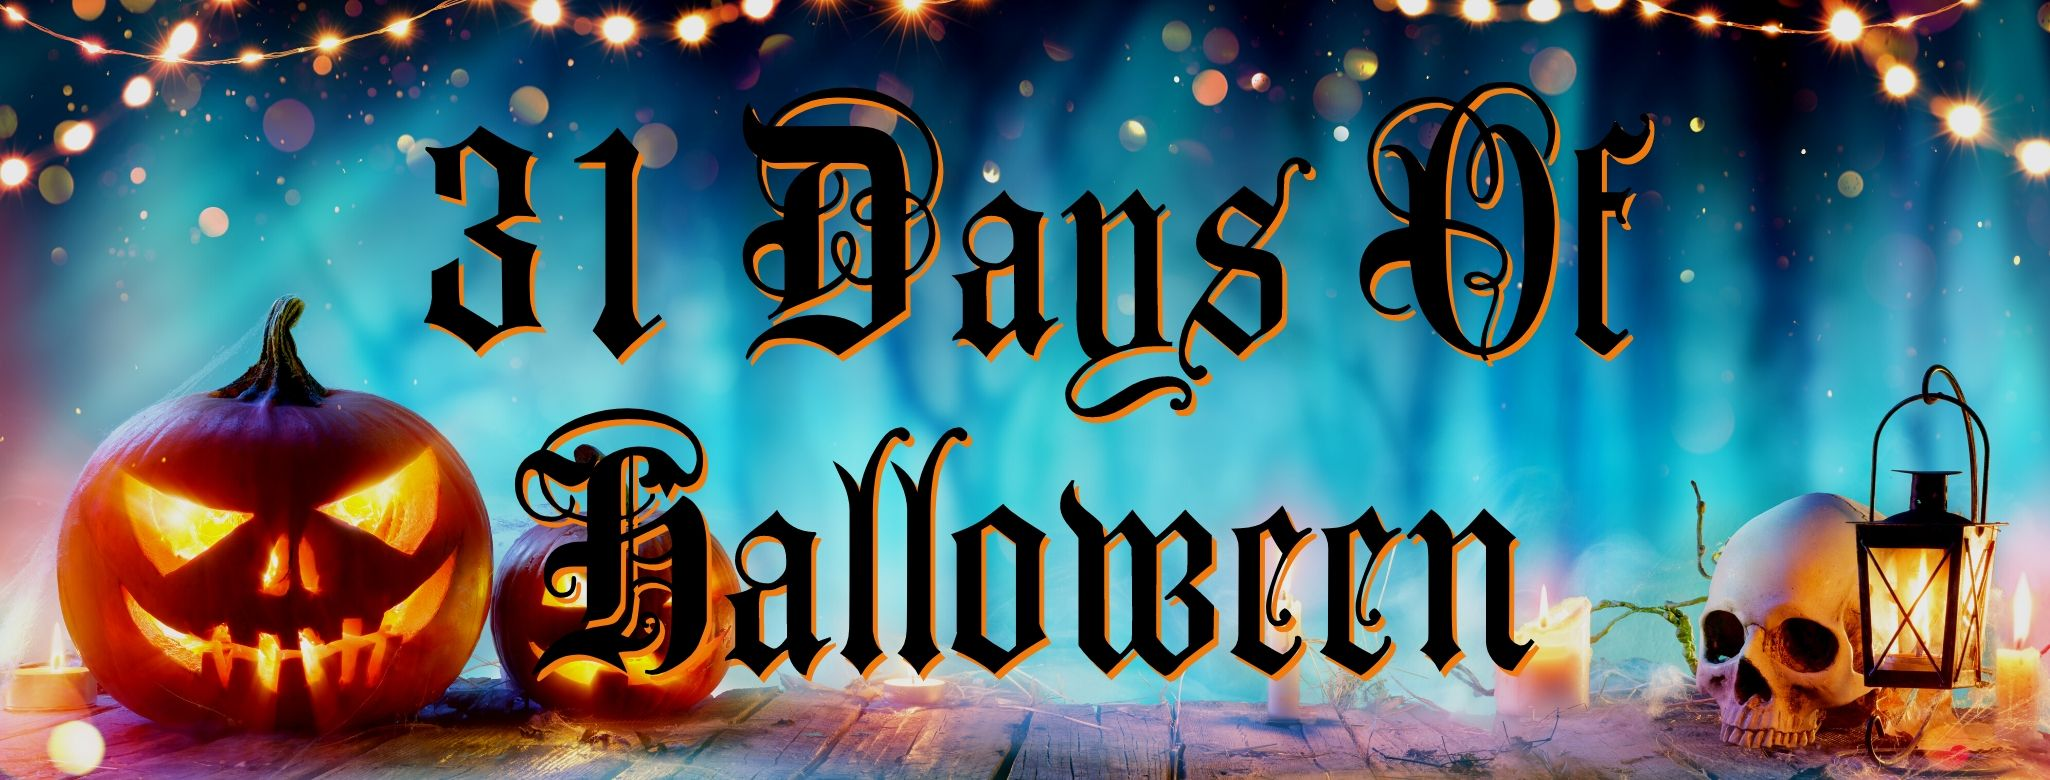 31 Days Of Halloween At Mr. Inkwells